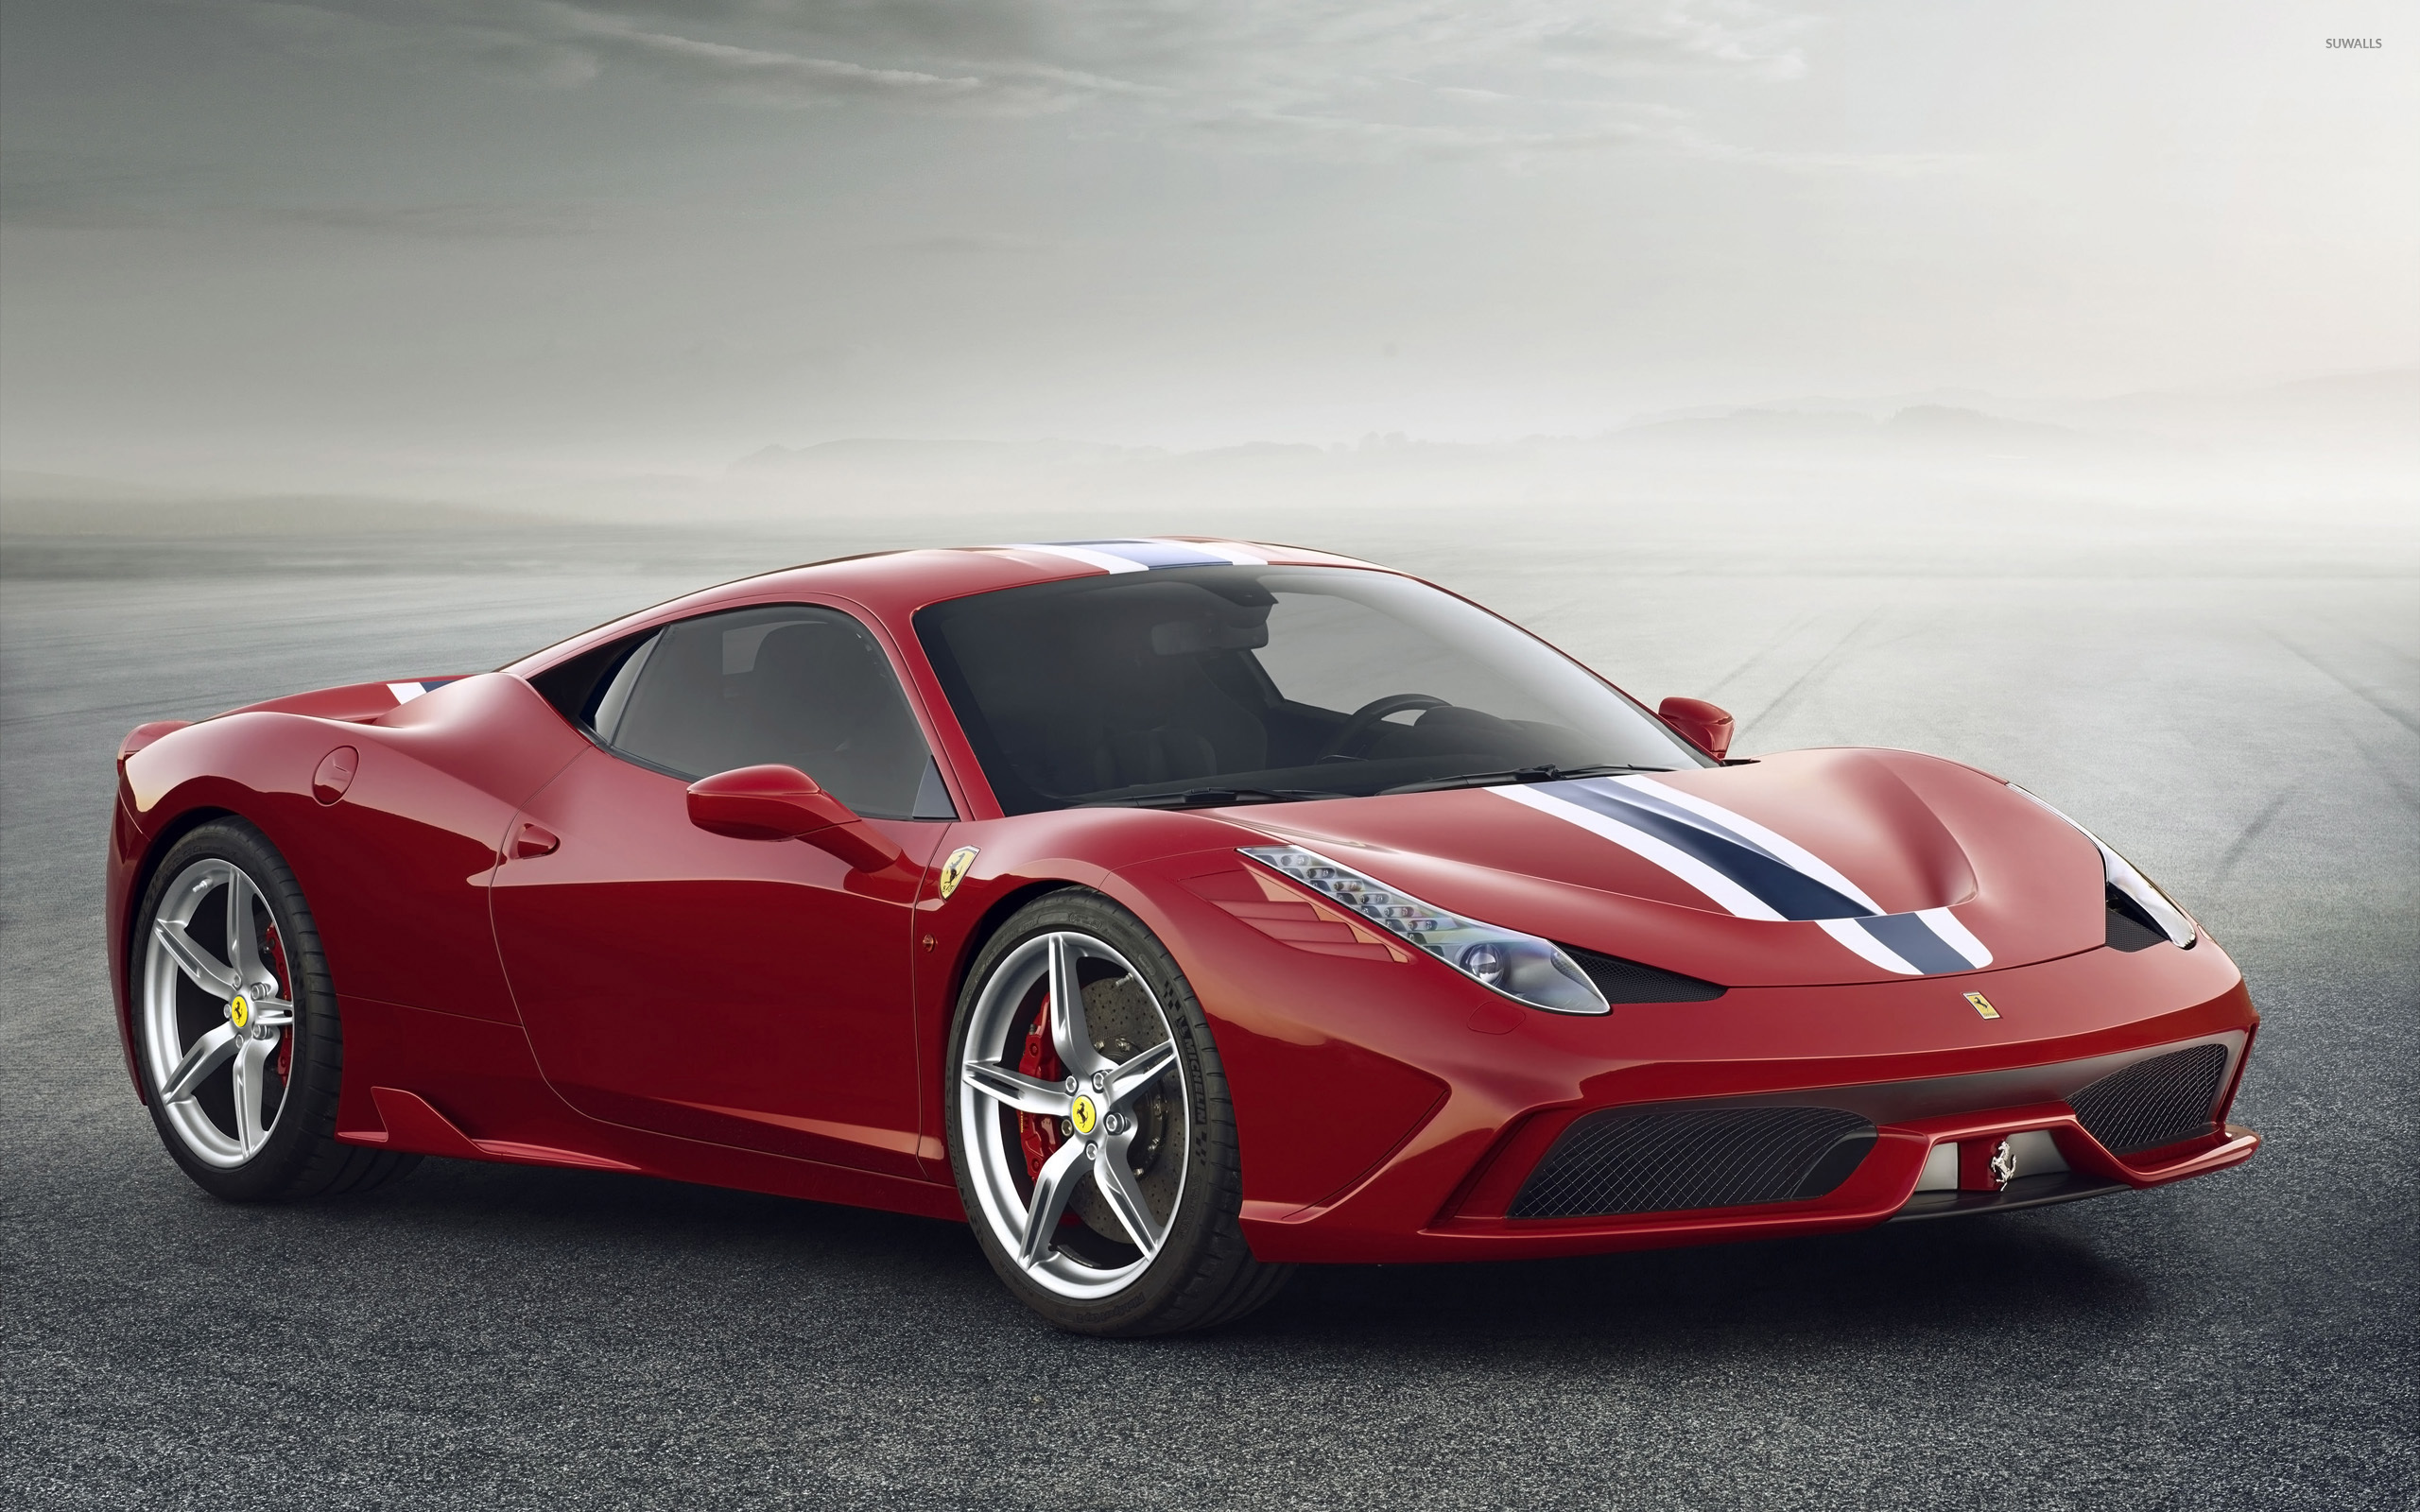 Red Ferrari 488 Gtb Front Side View Wallpaper Car Wallpapers 54156